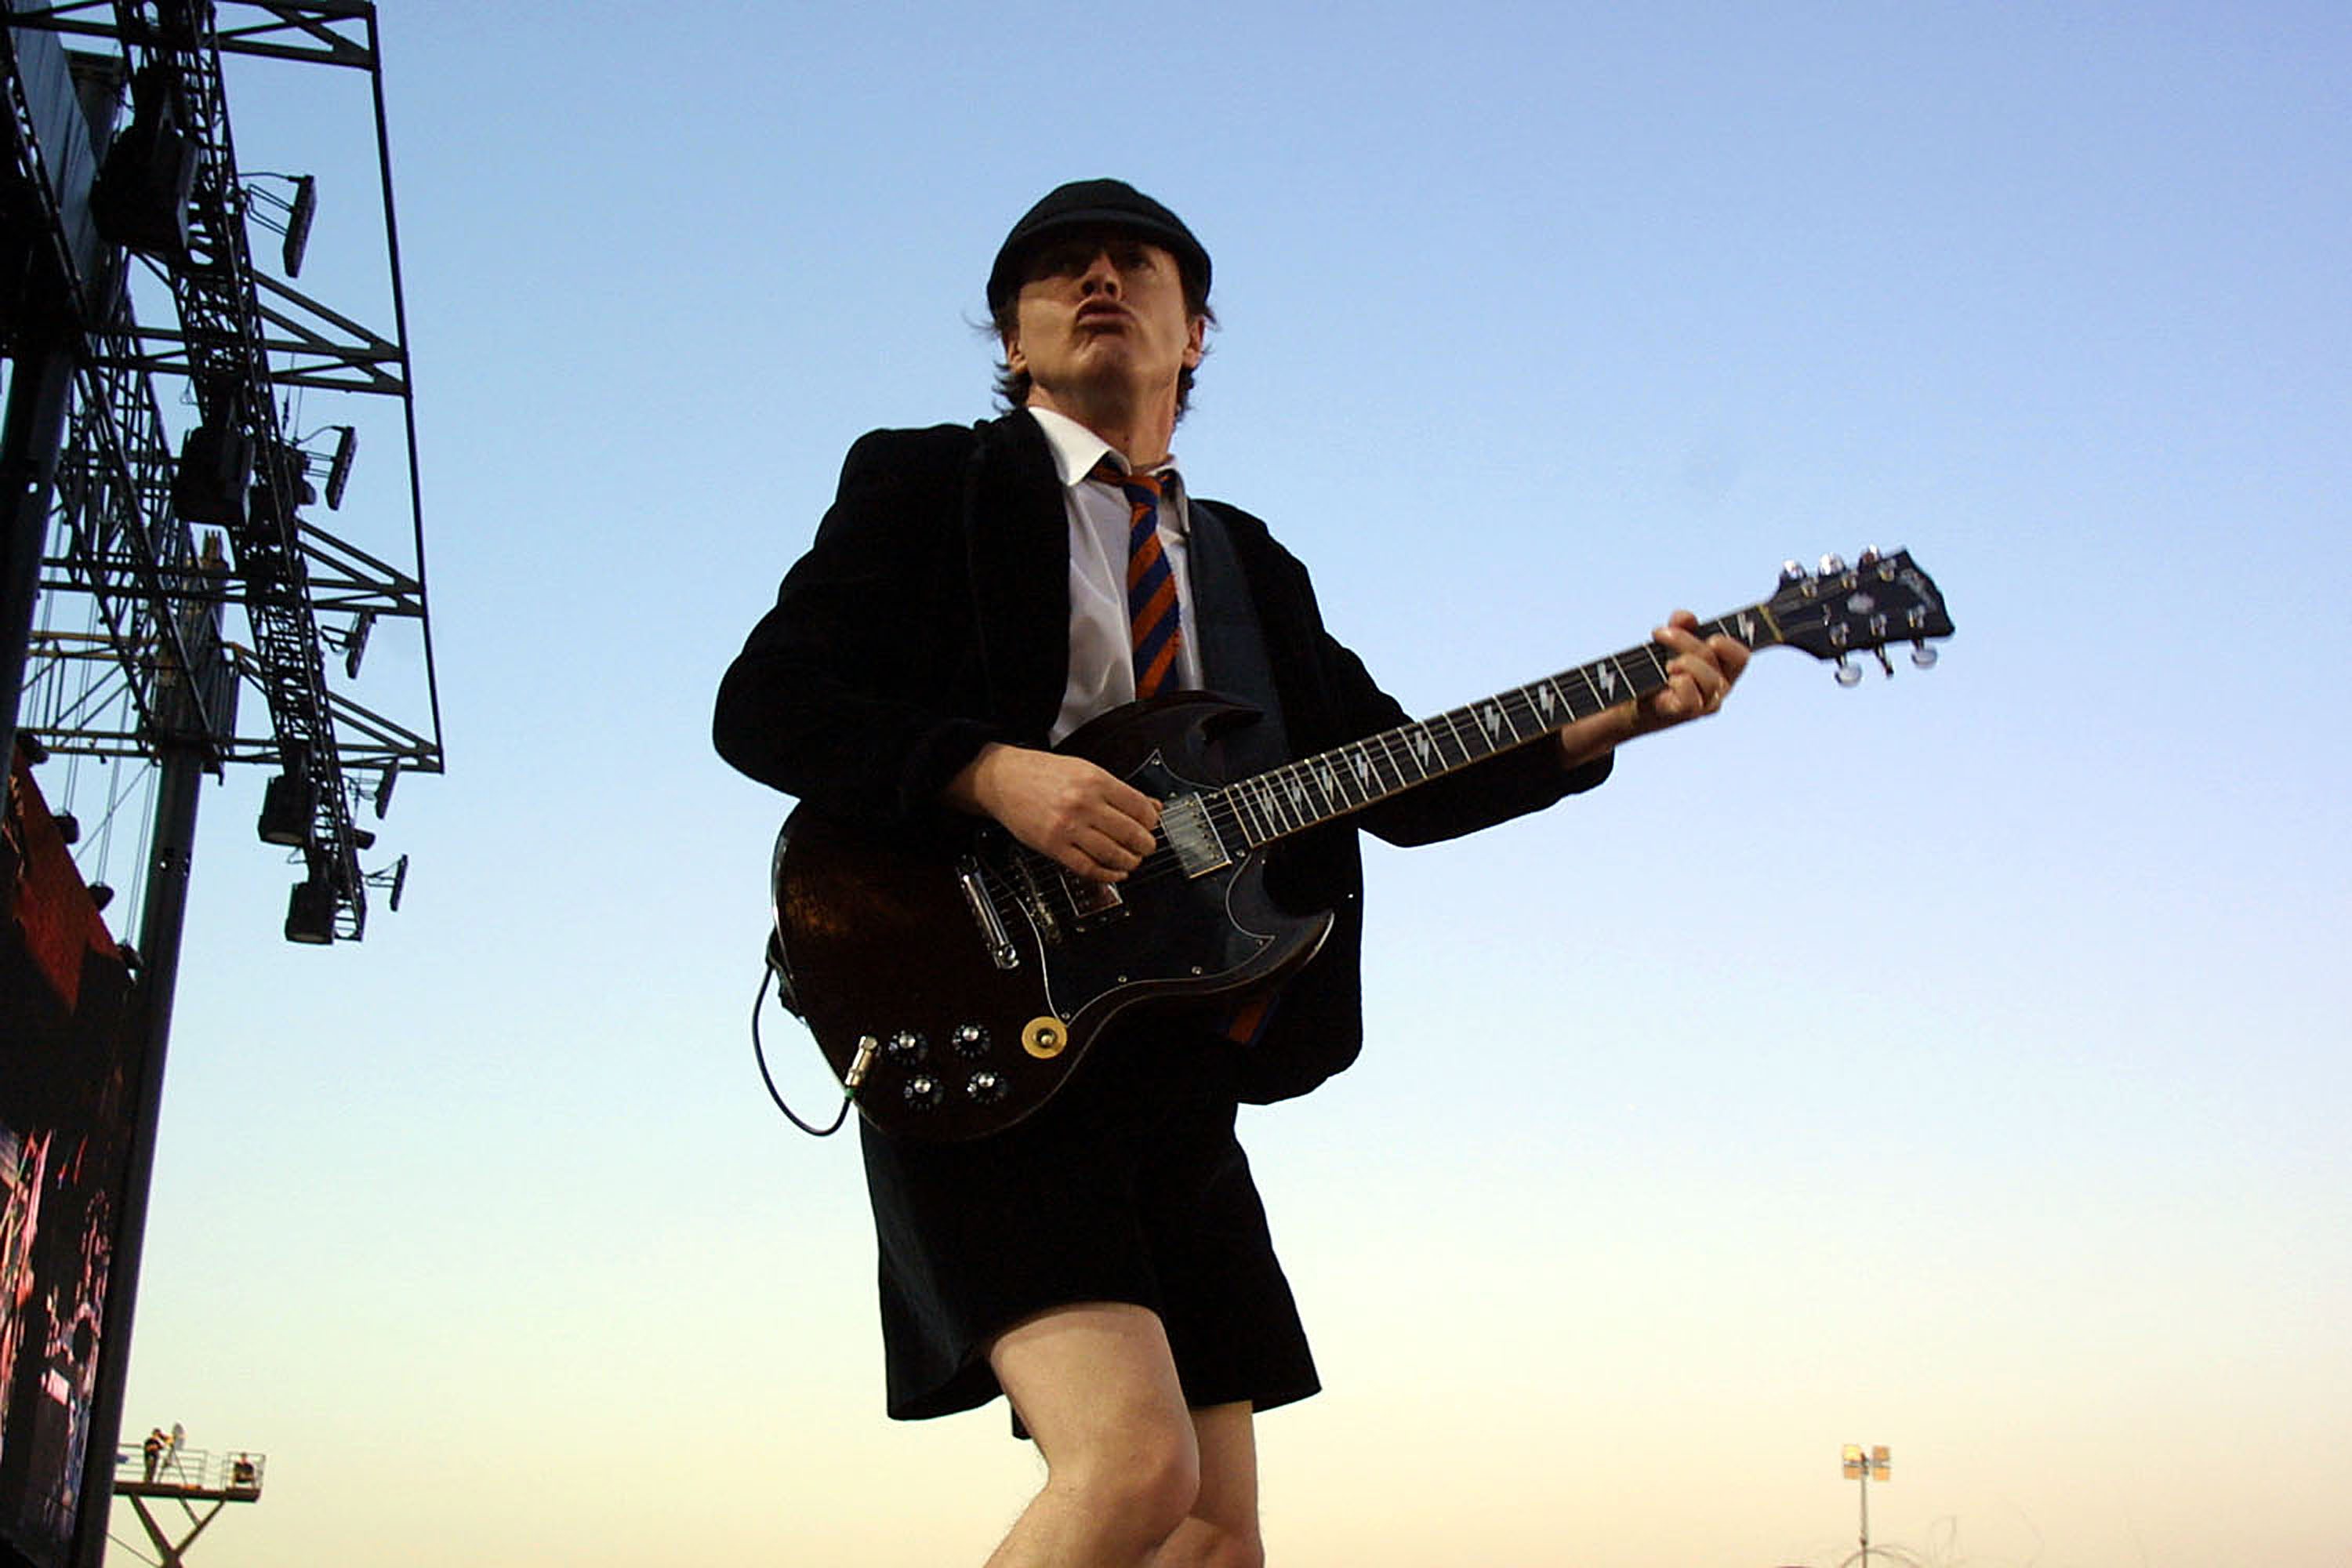 TORONTO, CANADA - JULY 30:  Angus Young of the Australian rock group AC/DC performs during the SARS relief concert held at Downsview Park July 30, 2003 in Toronto, Canada. An estimated 490,000 fans showed up for the daylong music festival headed by the Rolling Stones.  (Photo by Donald Weber/Getty Images)